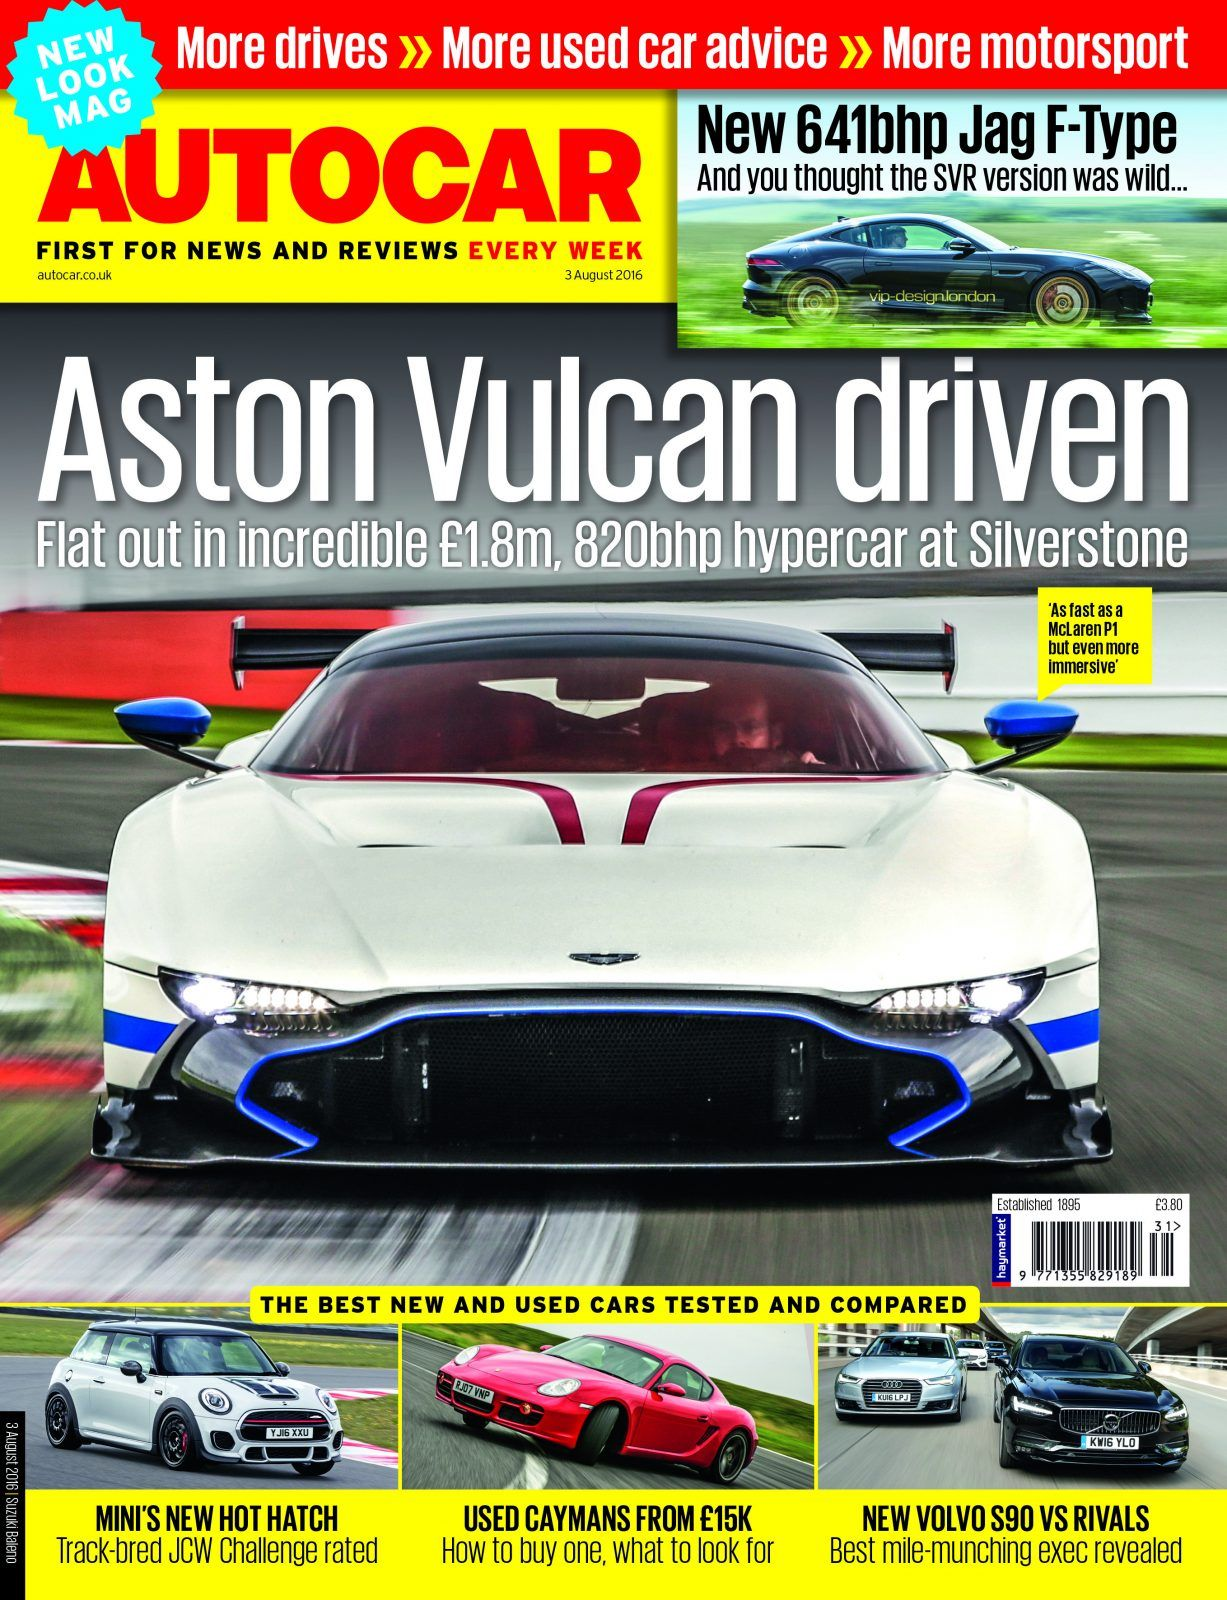 Get the new look Autocar 3 August issue here! More drives, more used car advice, more motorsport!  Aston Vulcan driven - flat out in a incredible £1.8m, 820bhp supercar at silverstone. 'as fast as a McLaren P1 but even more immersive'  New 641bhp Jag F-Type - and you thought the SVR version was wild.....  The best new and used cars tested and compared: Mini's new hot hatch - Track bred JCW challenge rated; Used Caymans from £15k- how to buy one, what to look for; New Volvo S90 vs rival...